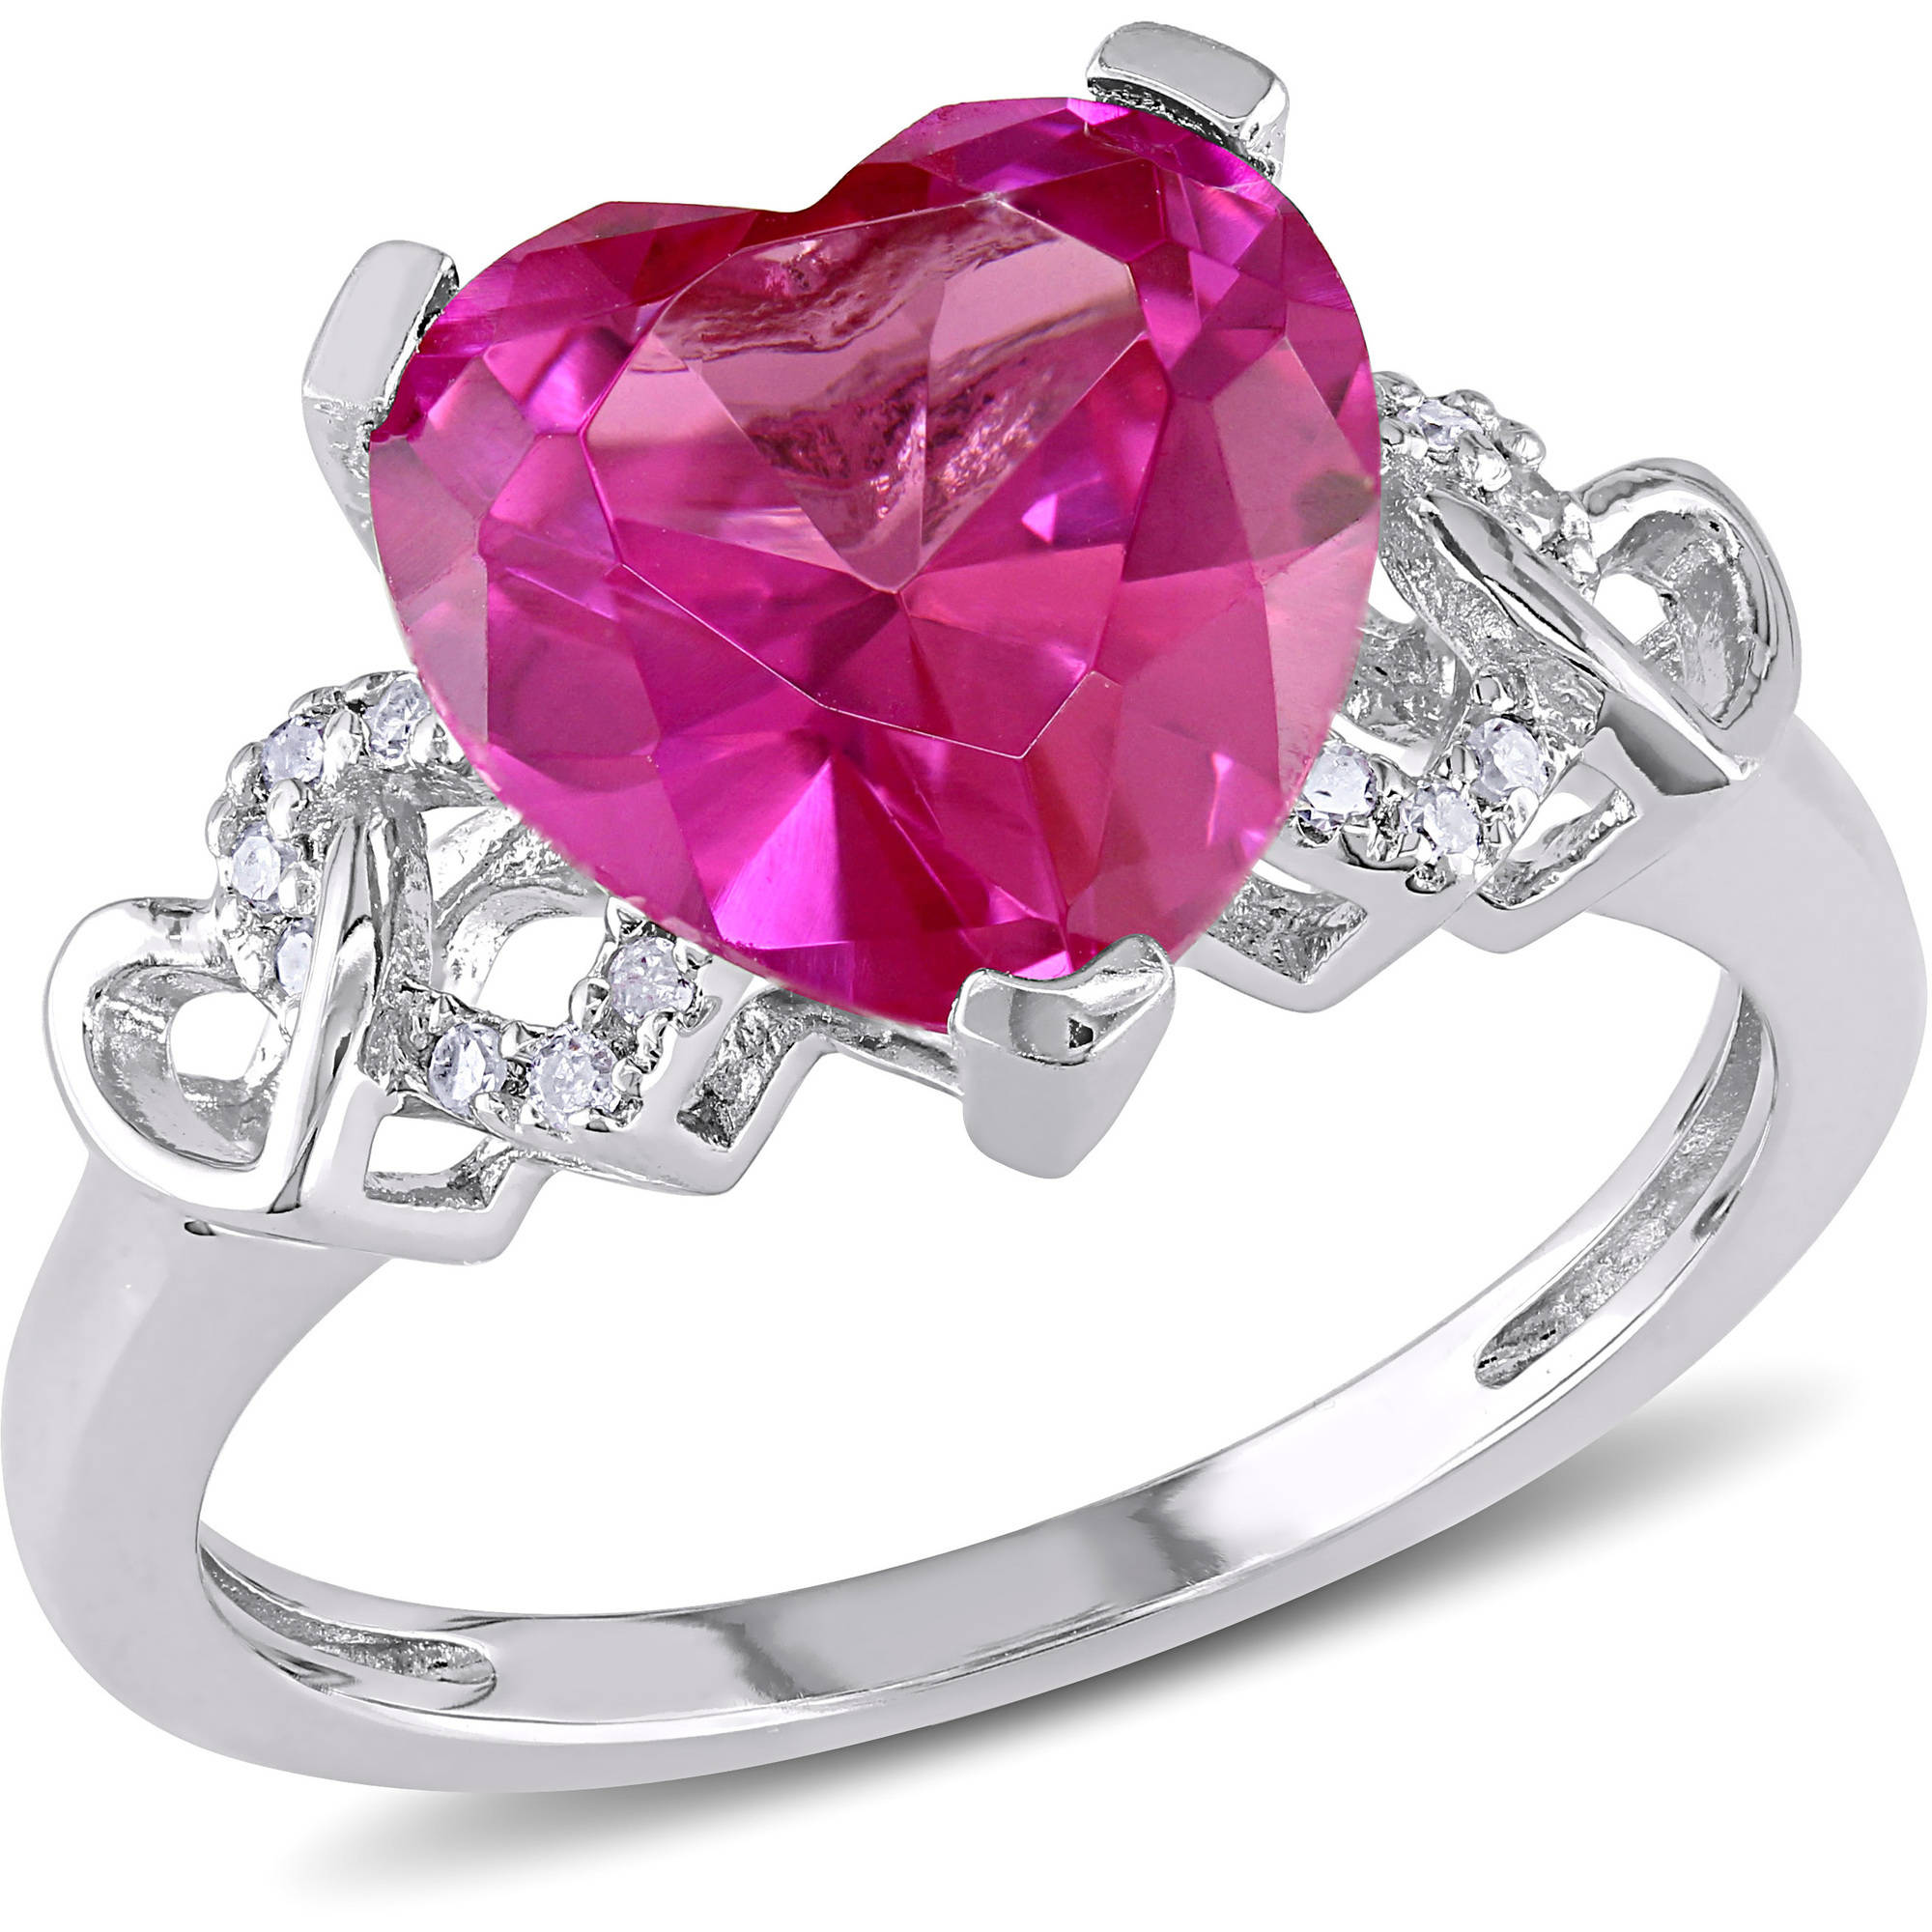 4-1 5 Carat T.G.W. Created Pink Sapphire and Diamond-Accent Sterling Silver Heart Ring by Delmar Manufacturing LLC